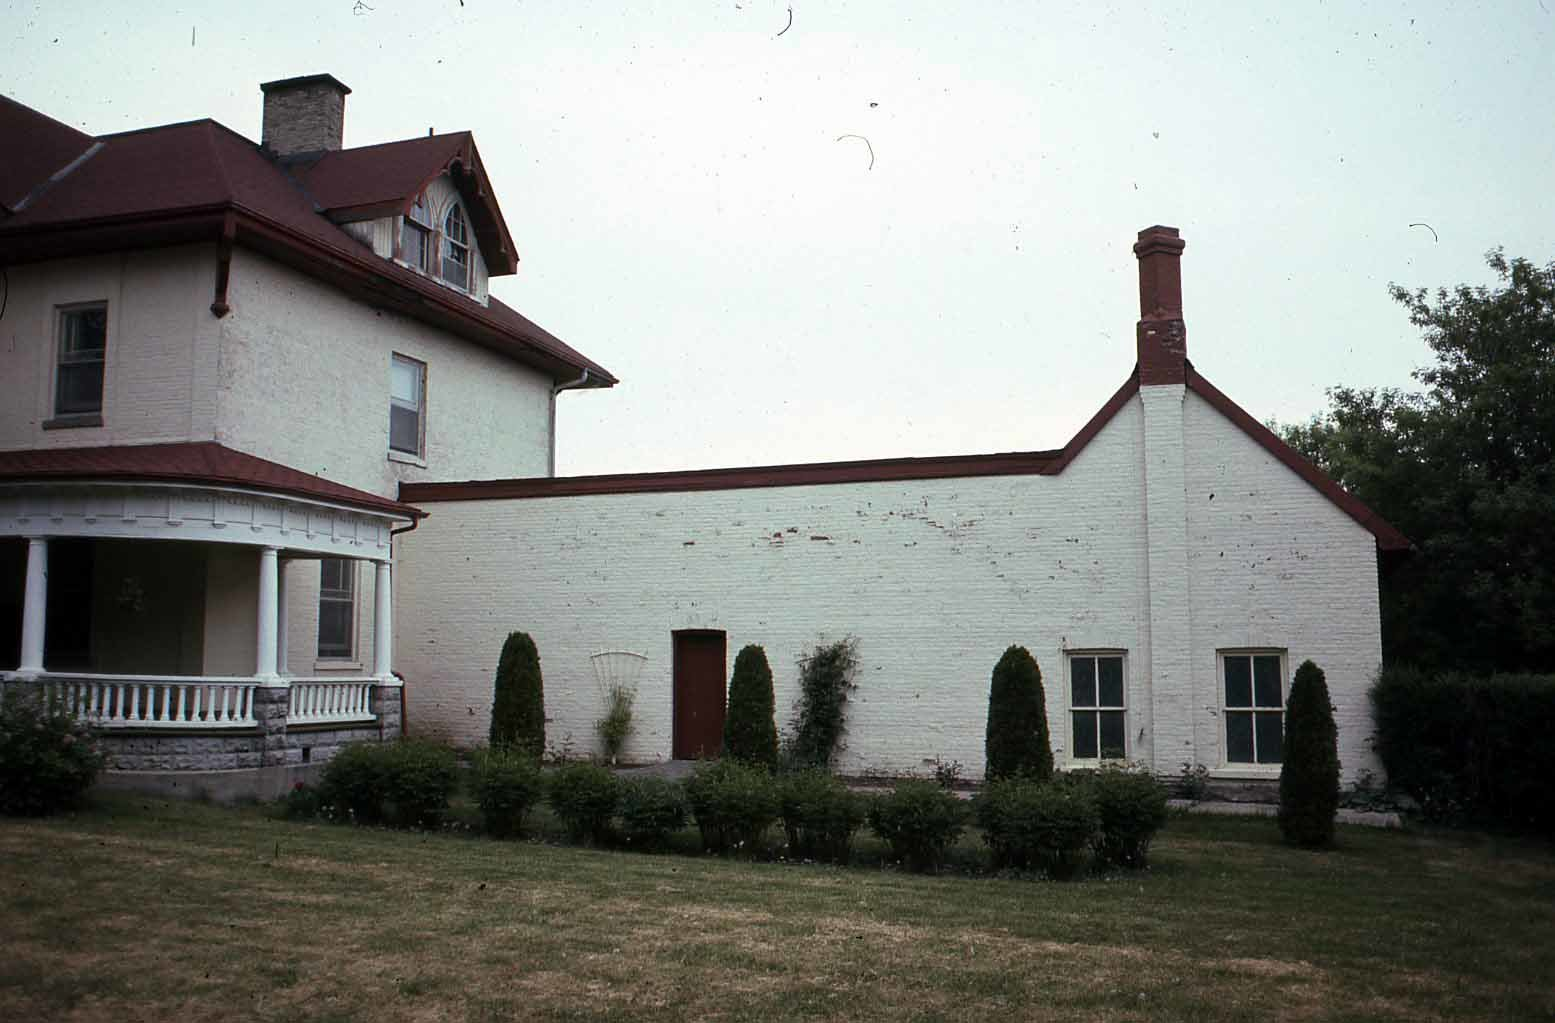 East wing, St. Mary's Church Rectory, Lindsay